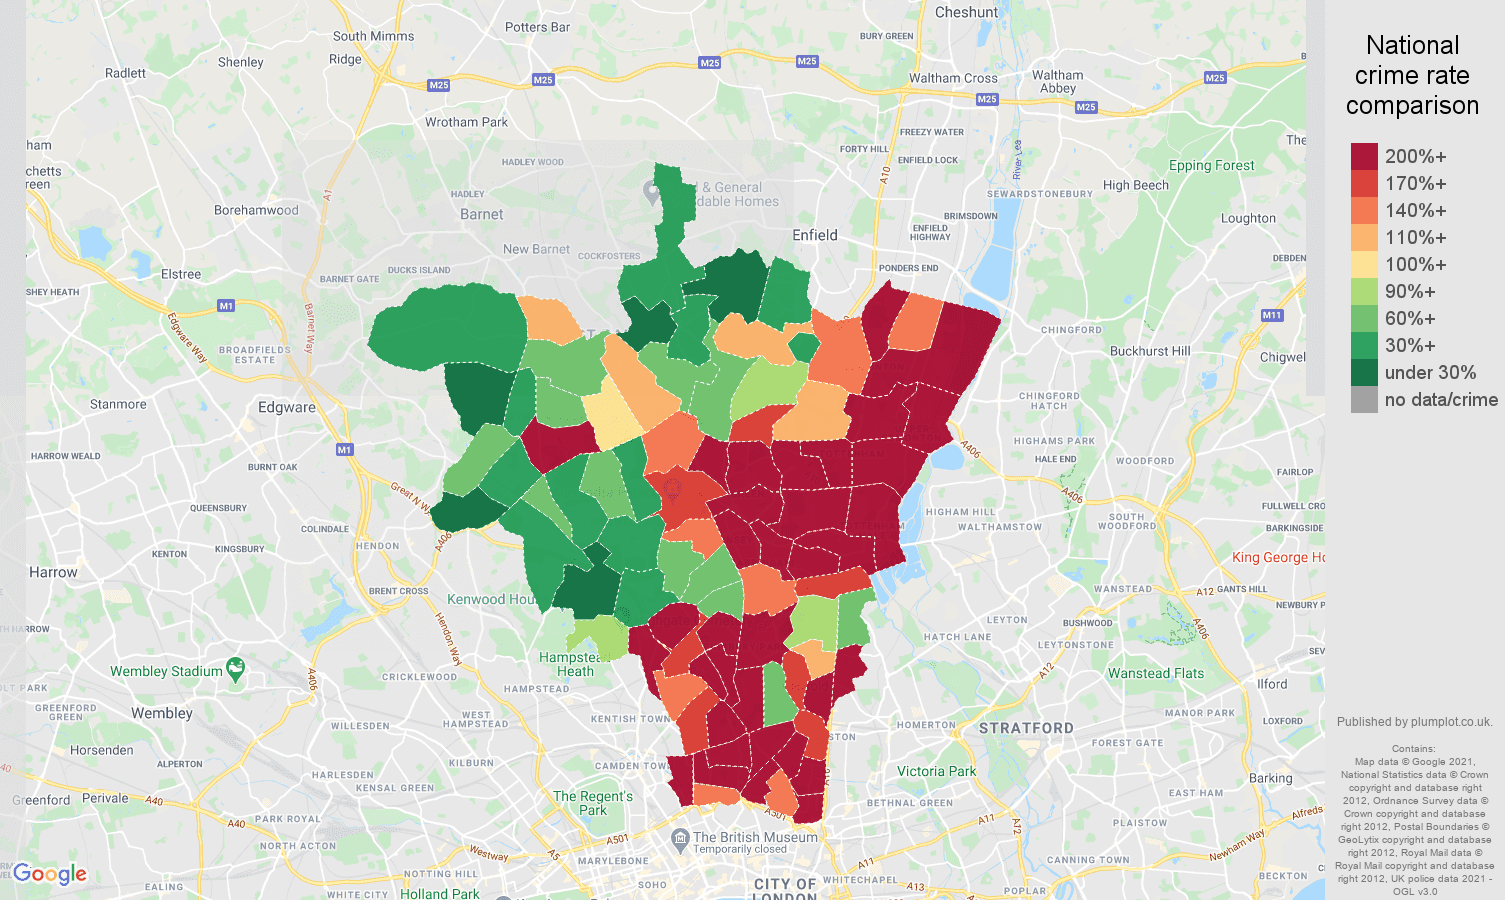 North London drugs crime rate comparison map